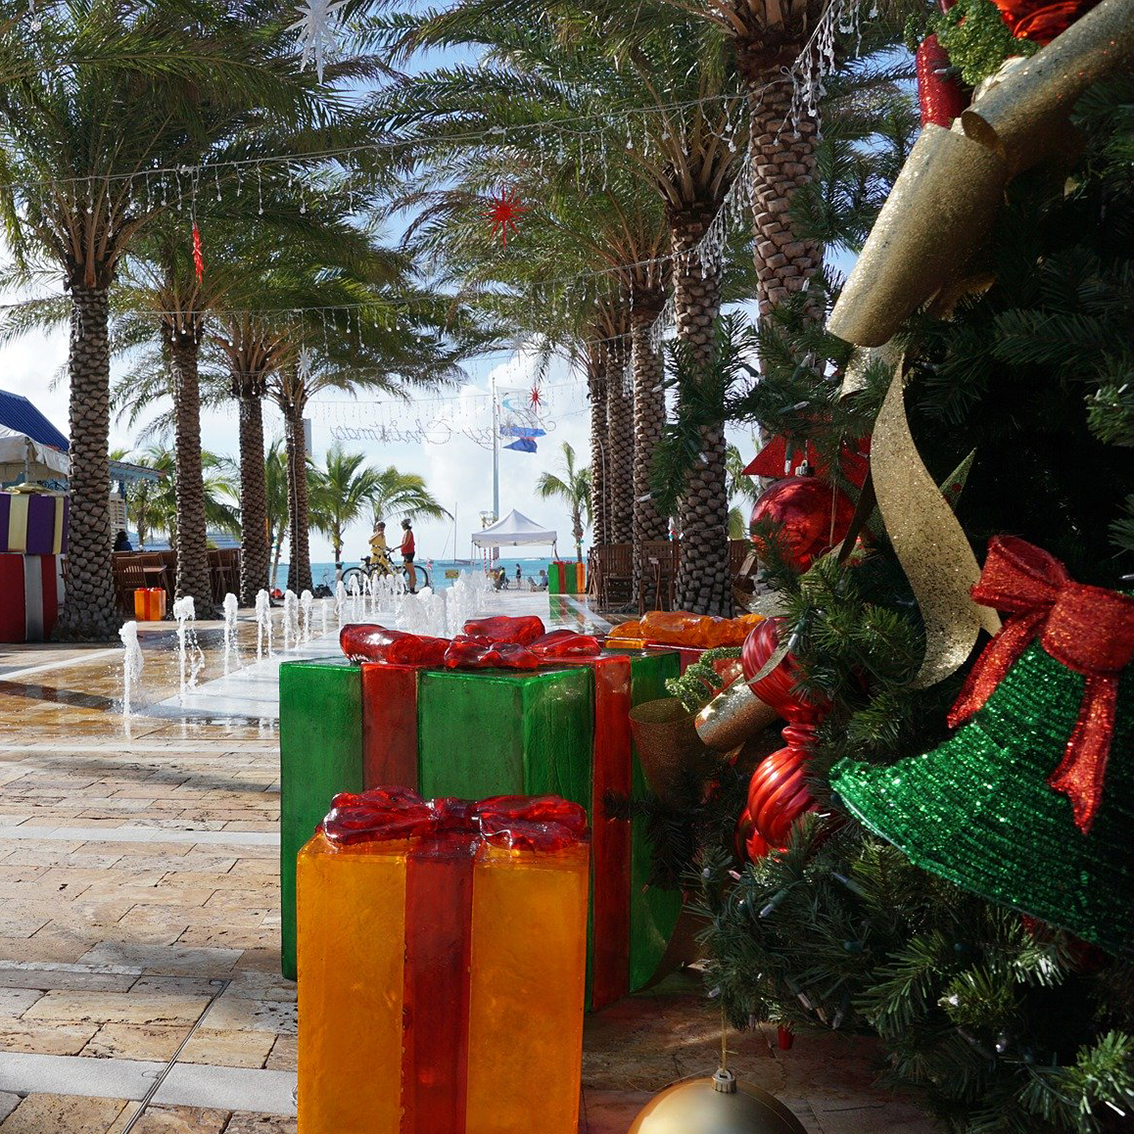 Christmas decorations and palm trees